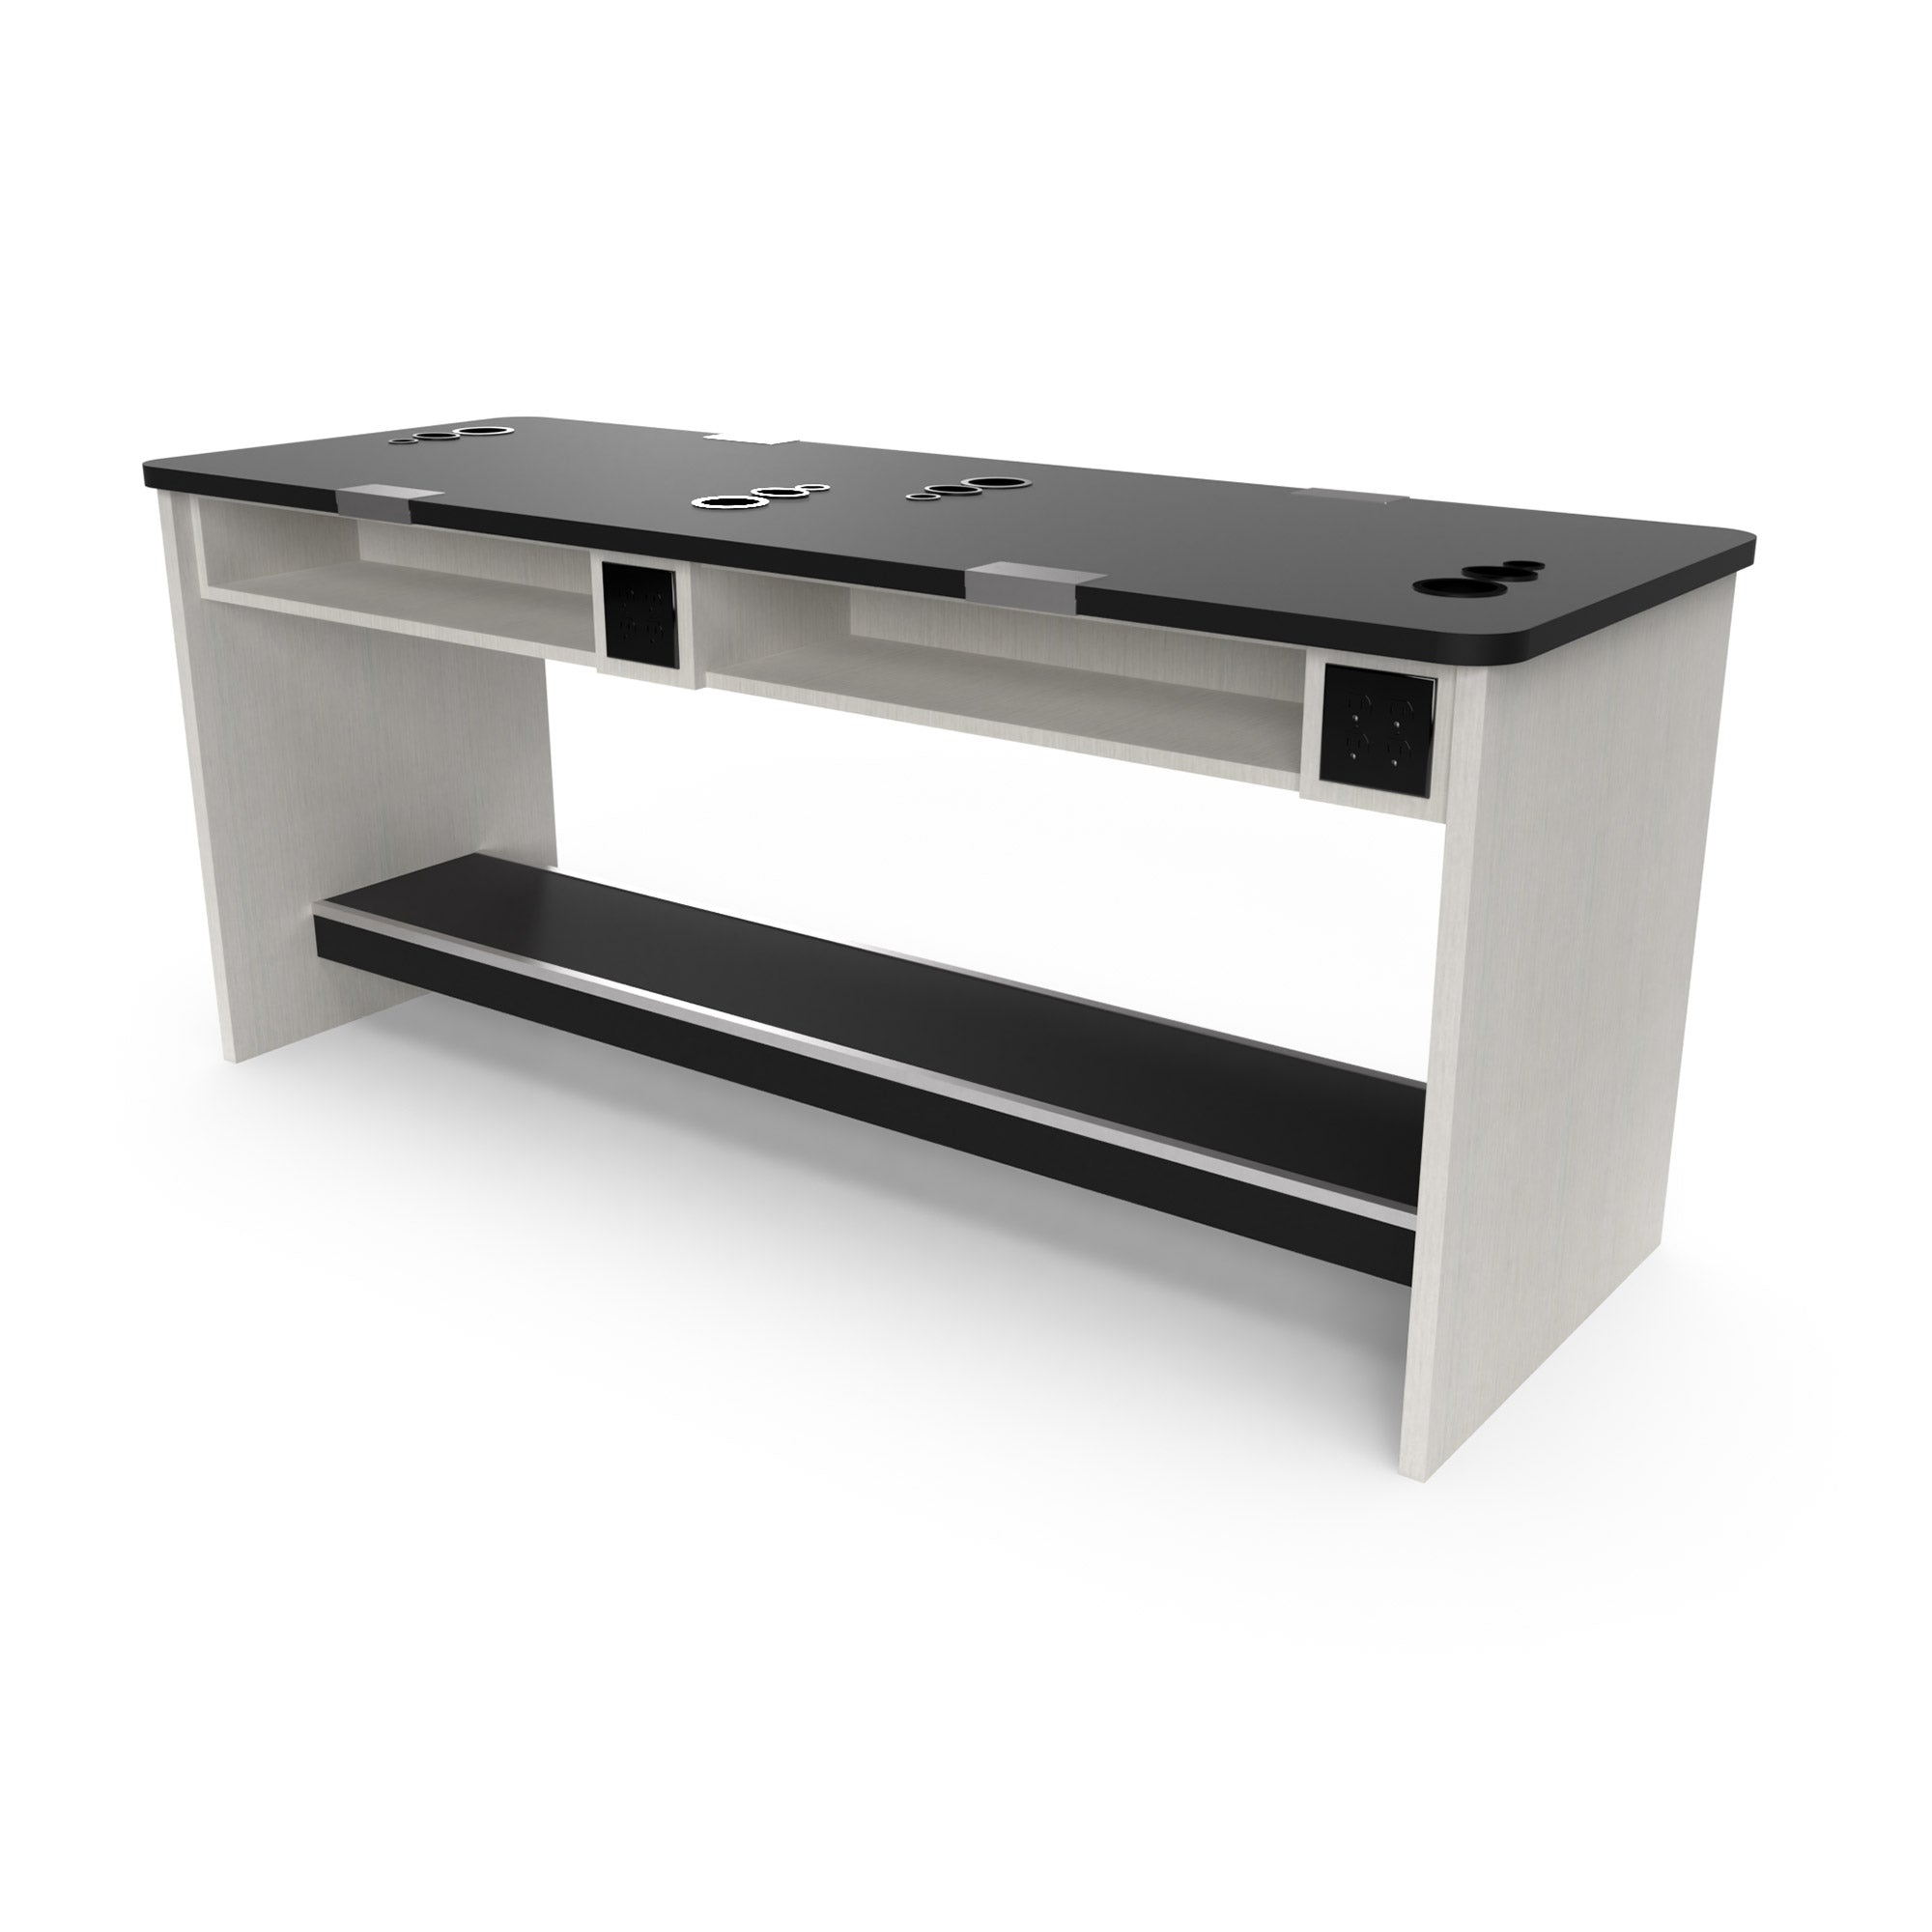 Double Sided Mannequin Combo Desk for Four Students - Collins